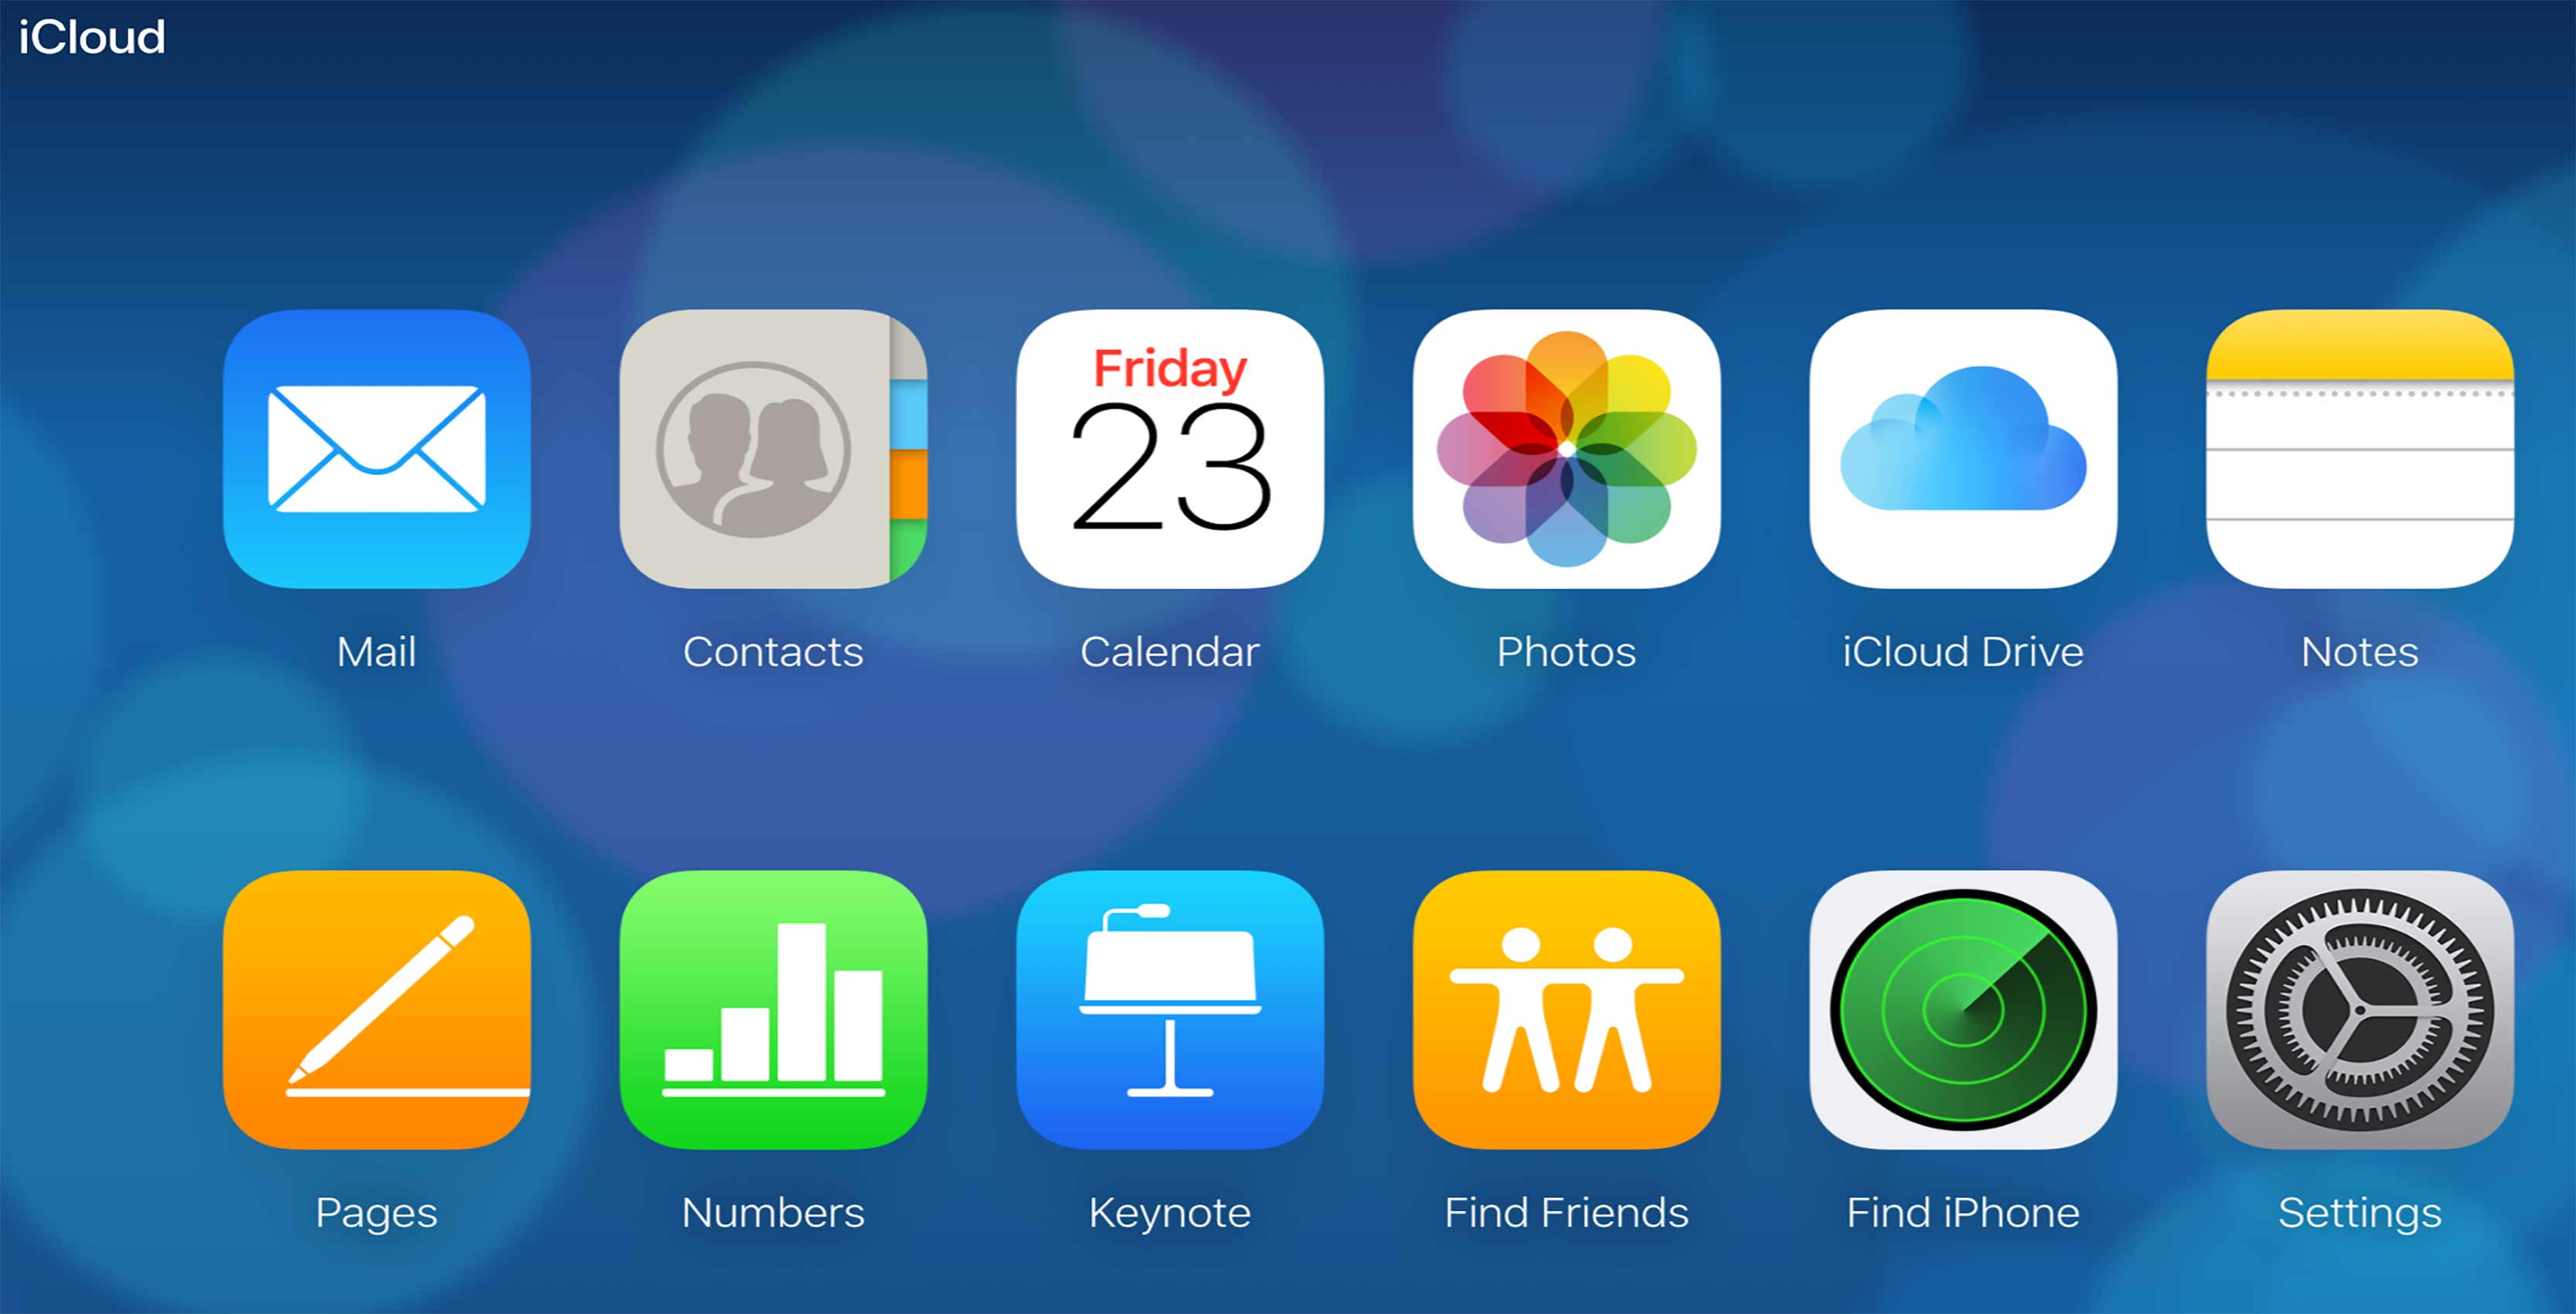 Apple introduces redesigned iCloud interface on the web in beta